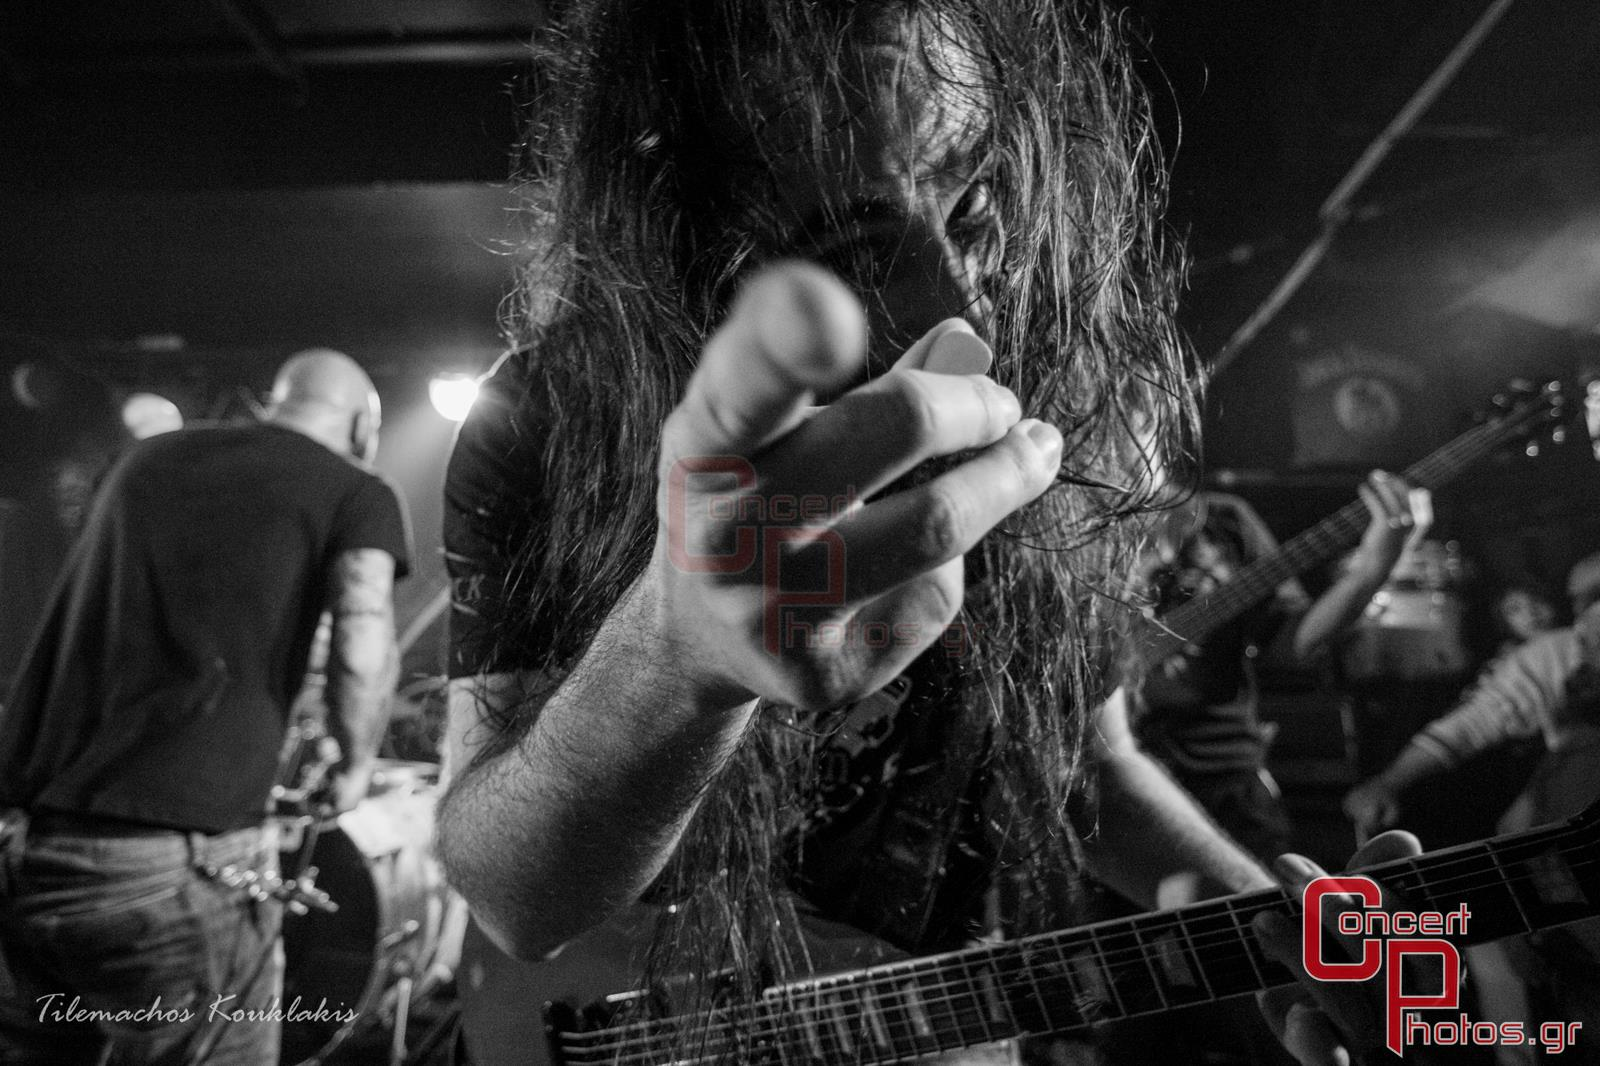 Nightstalker-Nightstalker AN Club photographer:  - concertphotos_-12